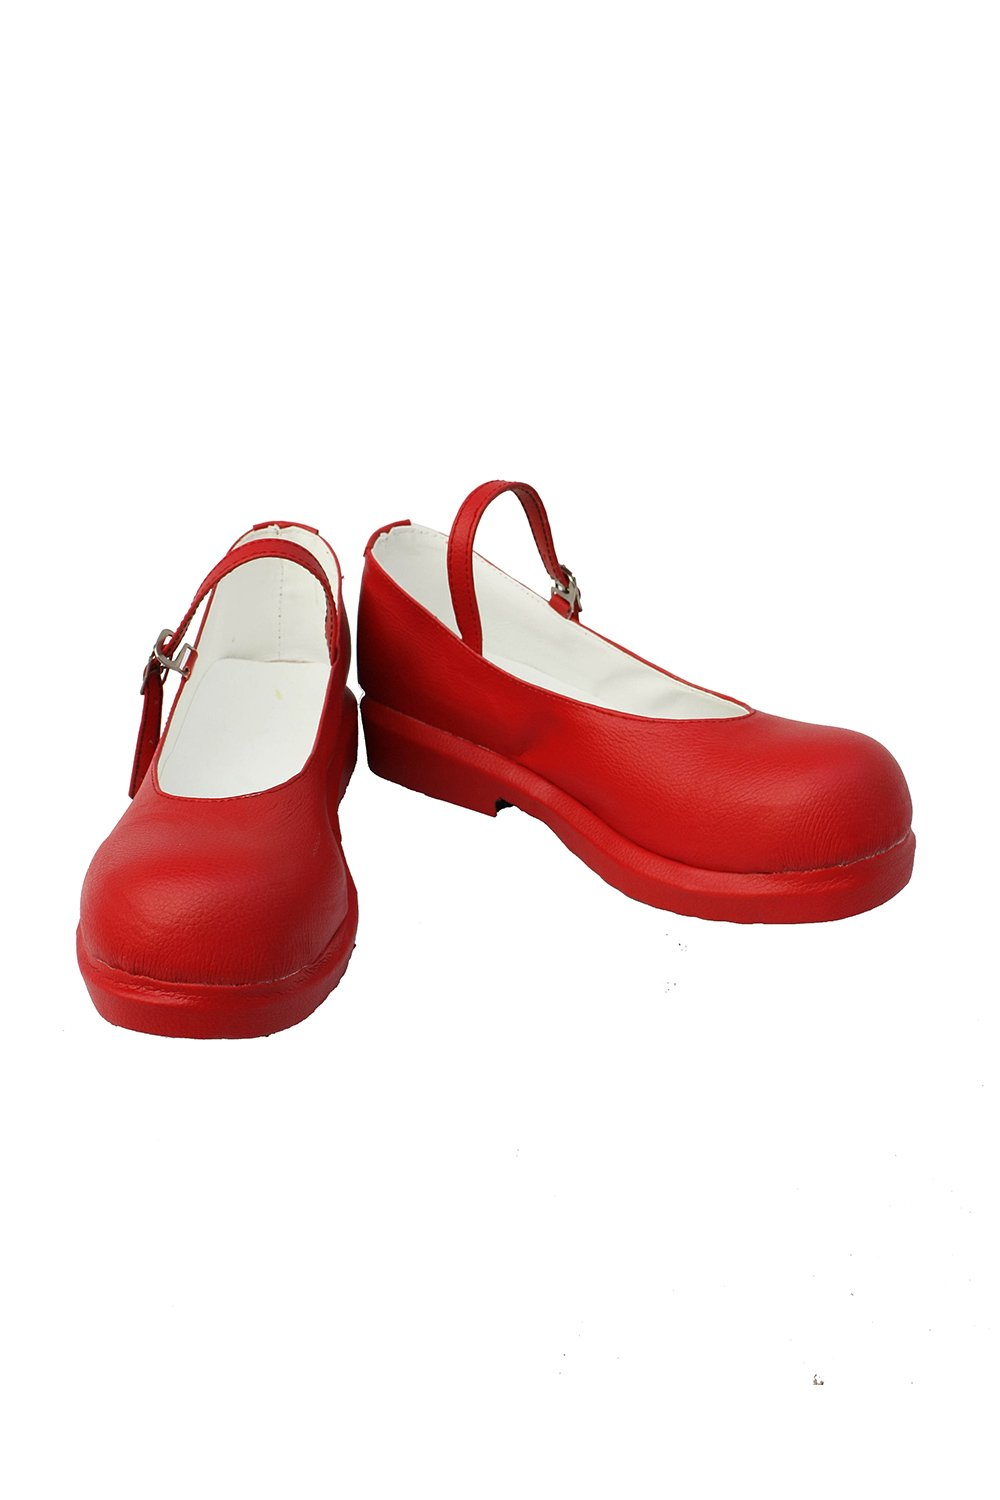 Touhou Project Kazami Yuuka Cosplay Shoes Boots